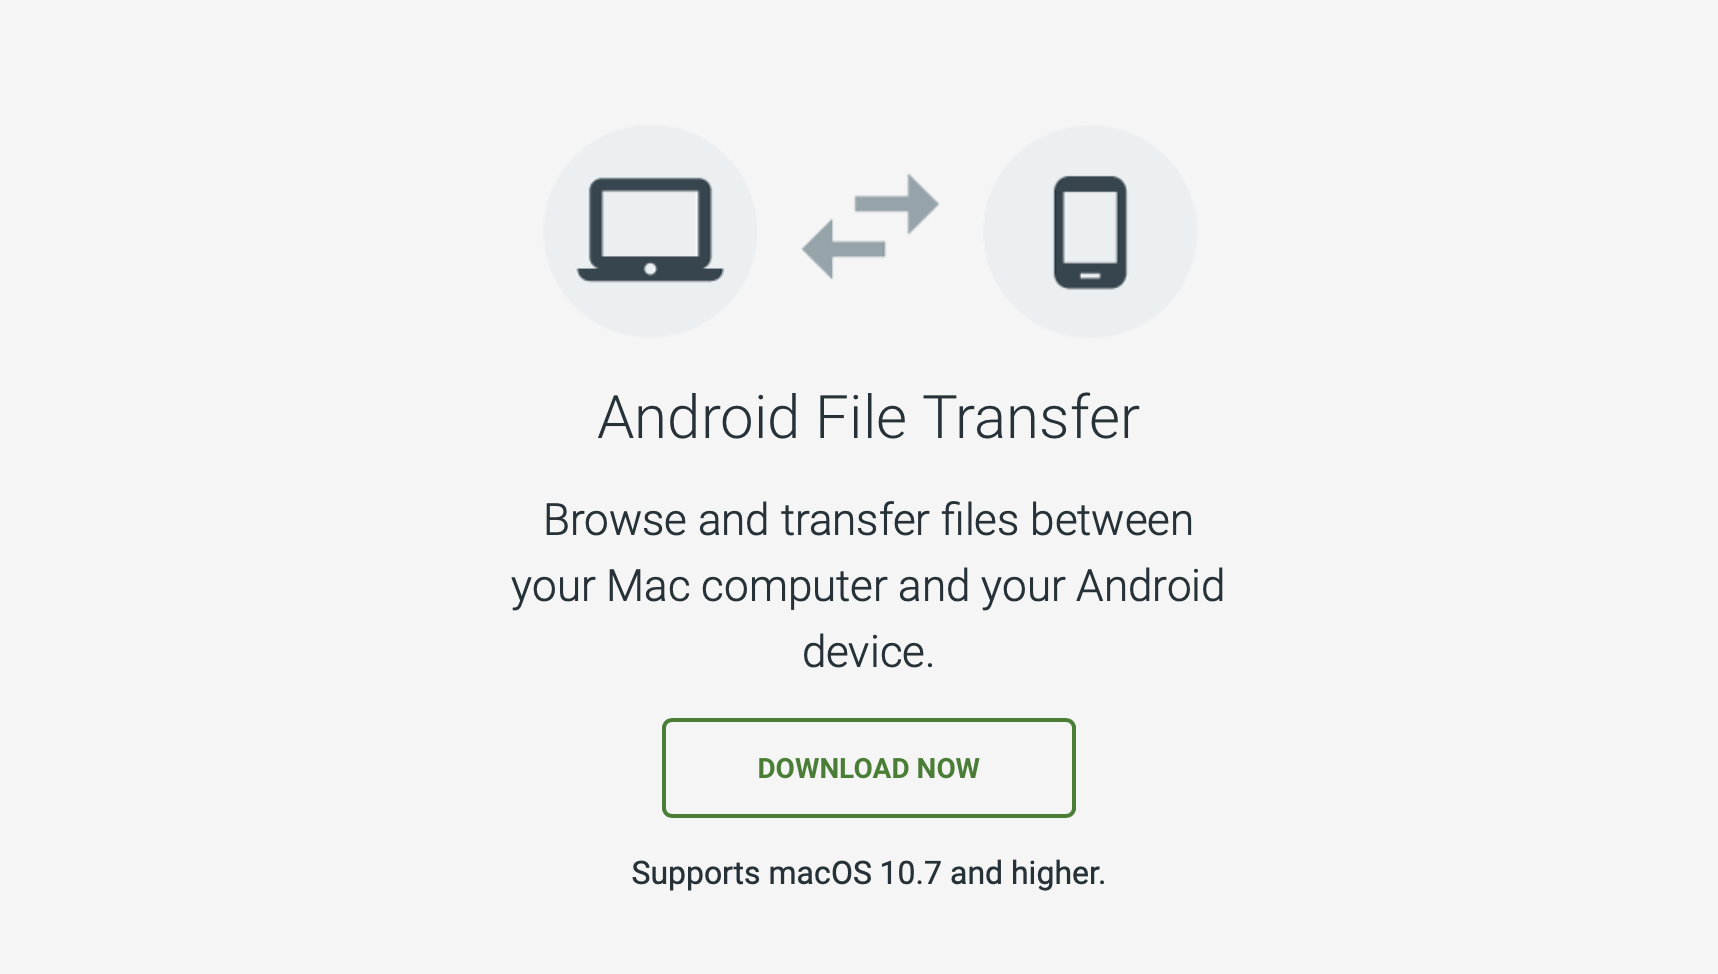 Android File Transfer App for macOS